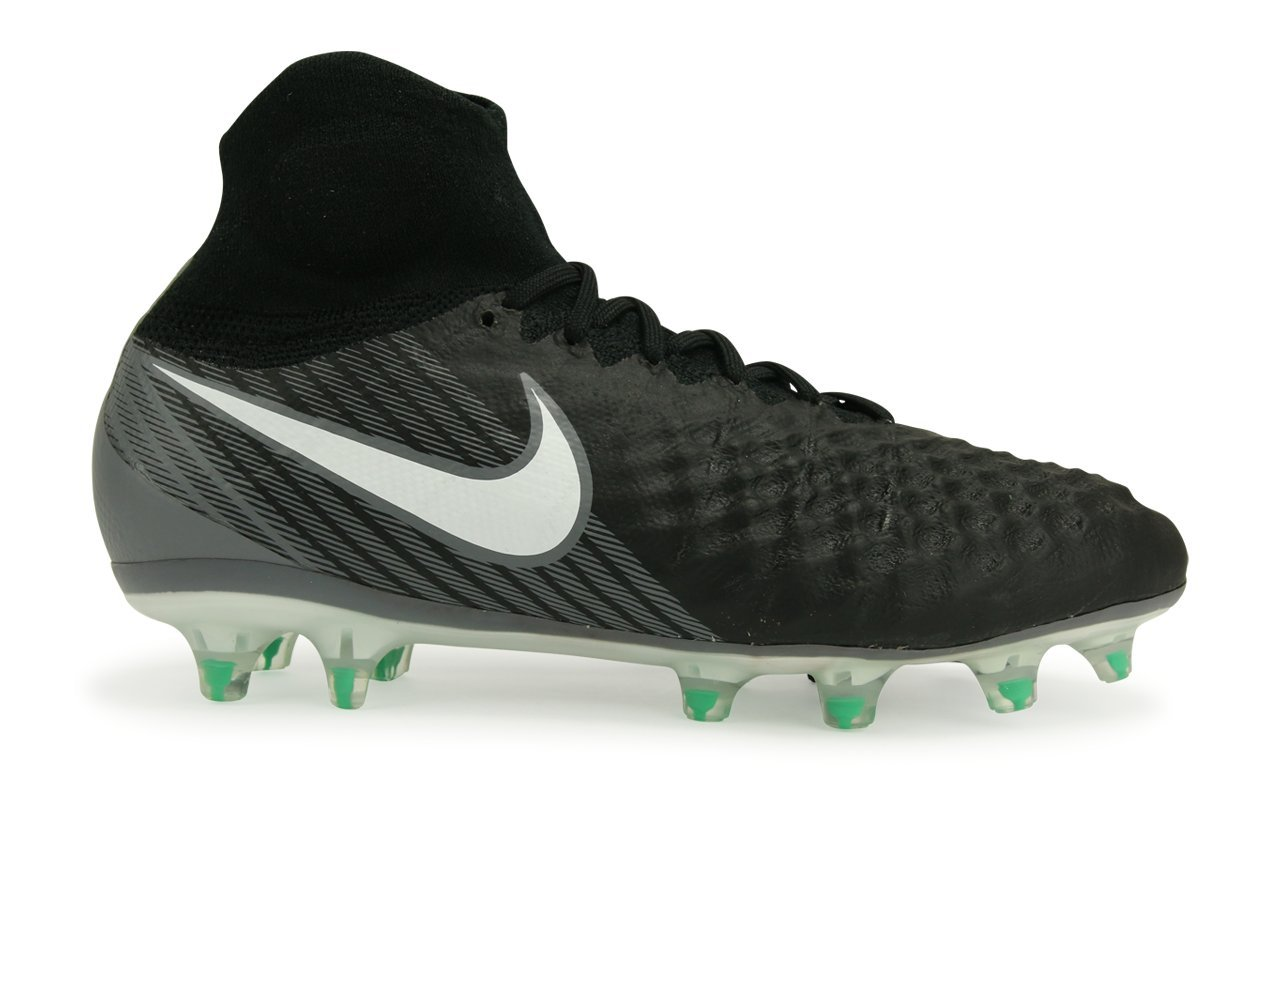 NIKE KIDS MAGISTA OBRA II FG BLACK/WHITE/COOL GREY/STADIUM GREEN Shoes - 6Y